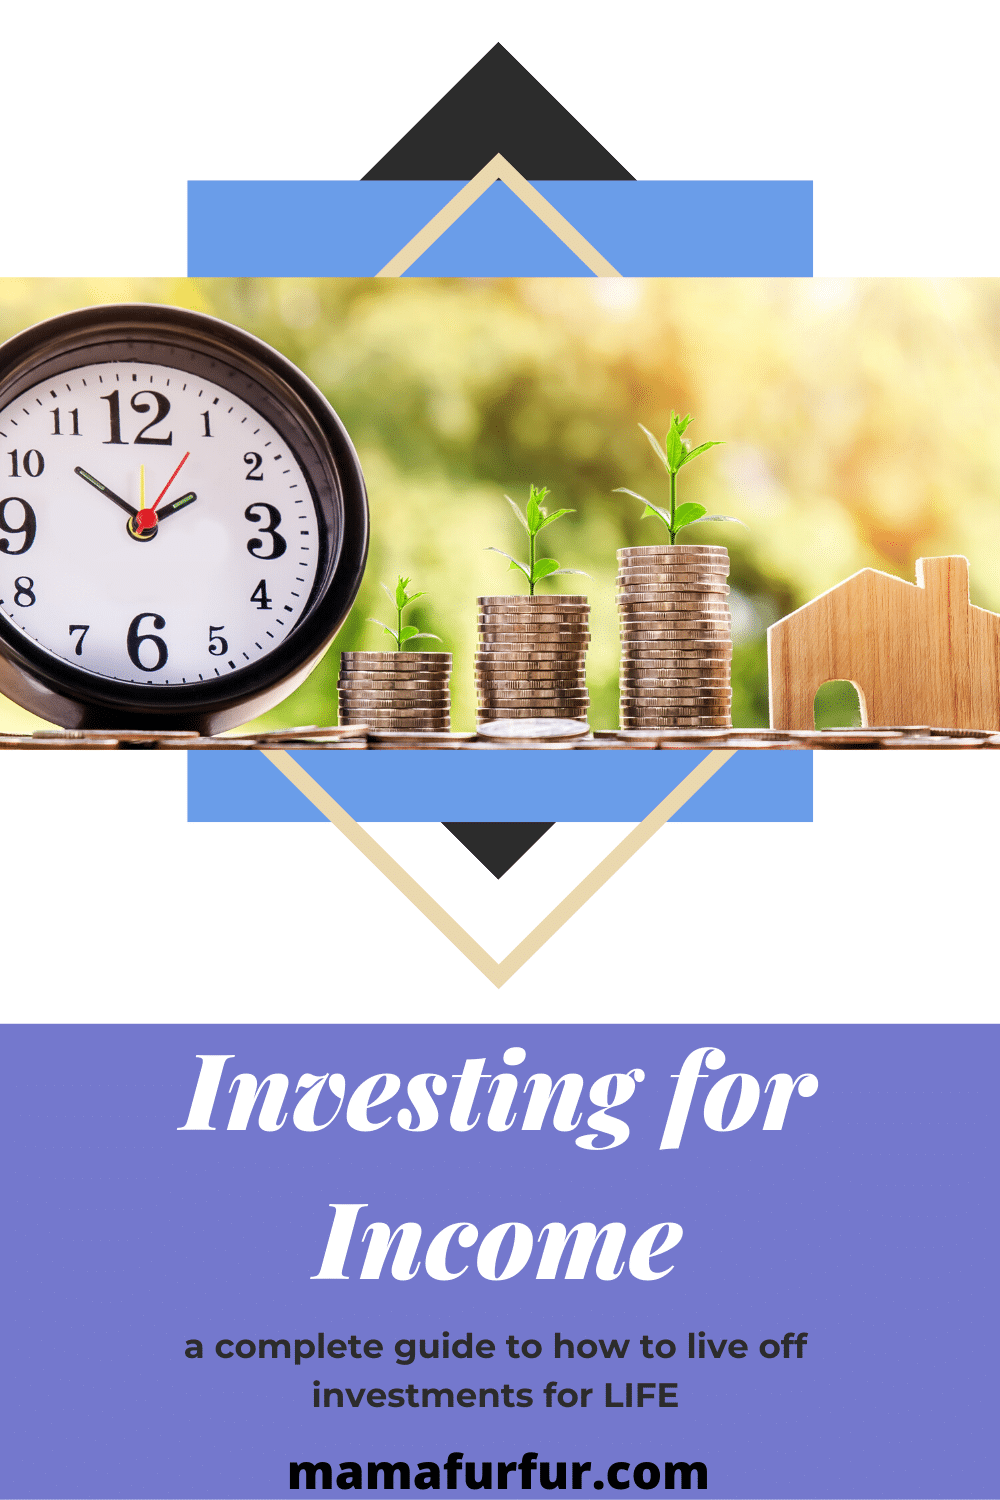 Investing for Income - How to Live off Investments & Dividends for LIFE